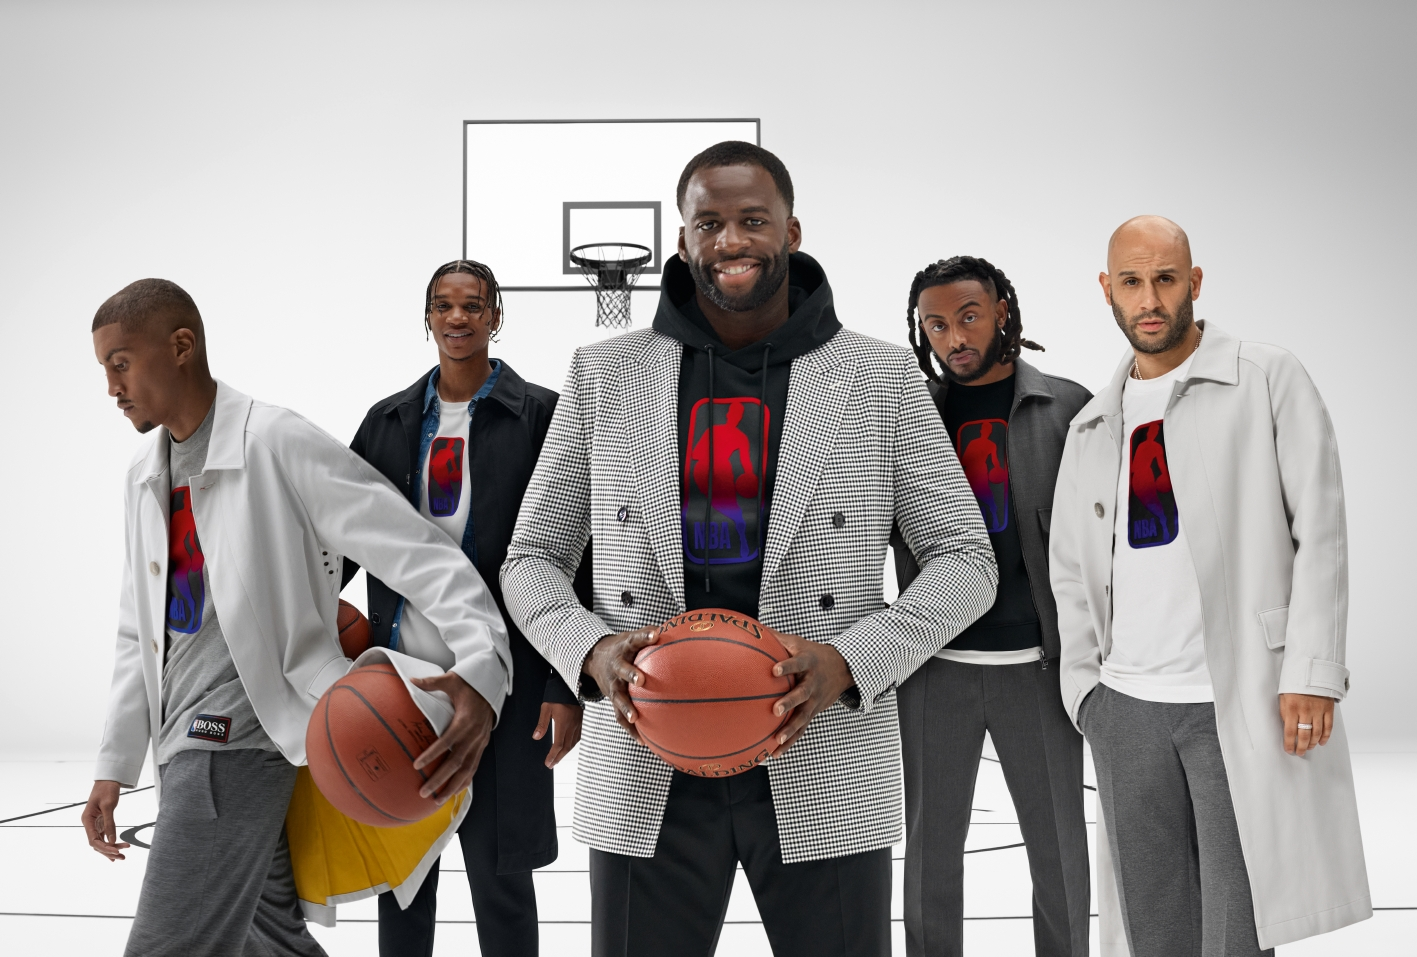 Hugo Boss has been pushing into more casual clothing, including with partnerships with the NBA.